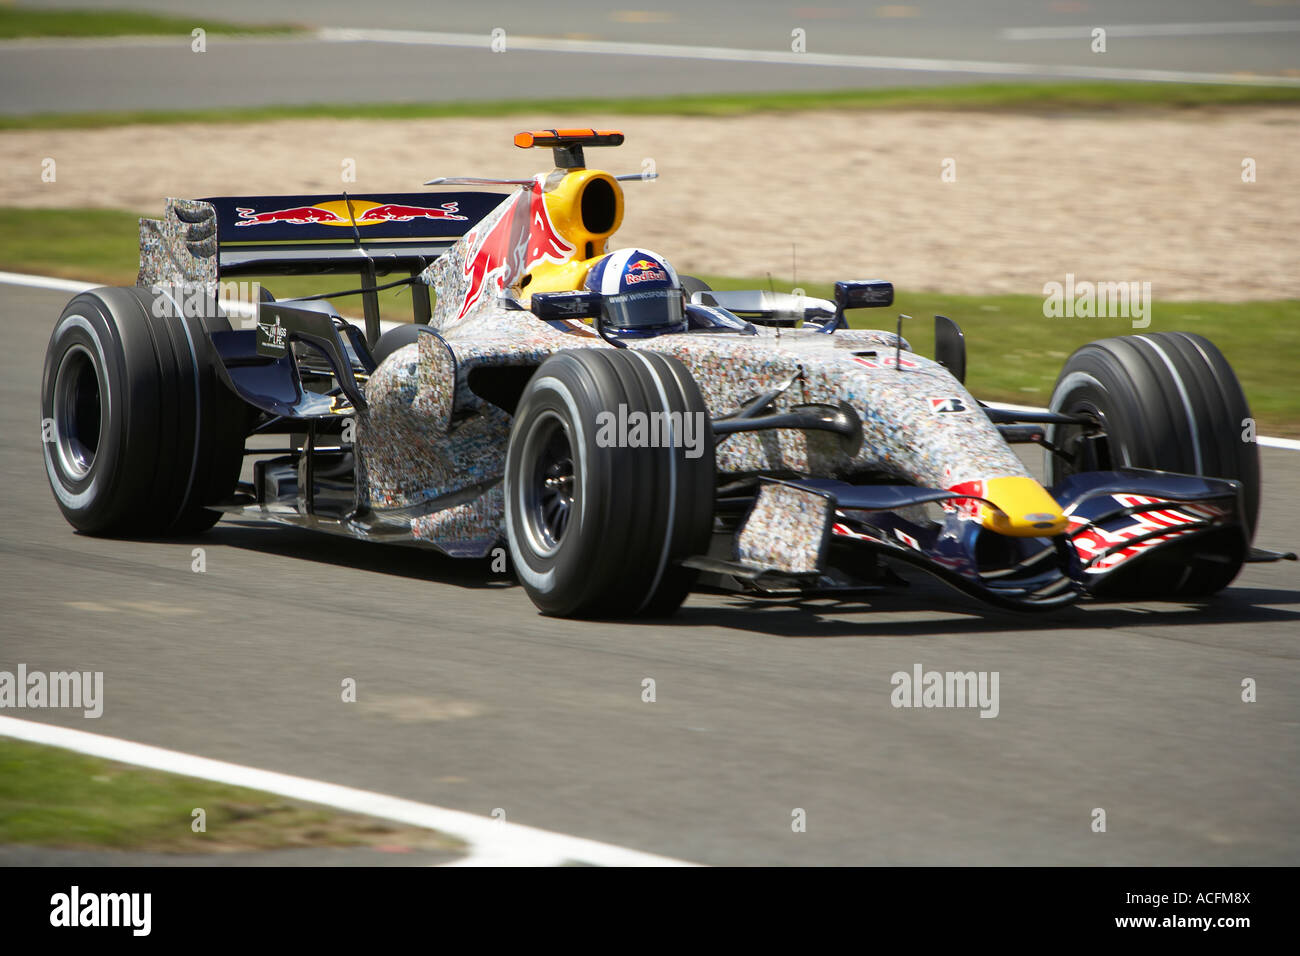 david coulthard driving his red bull racing forumla one car at the stock photo 13143529 alamy. Black Bedroom Furniture Sets. Home Design Ideas